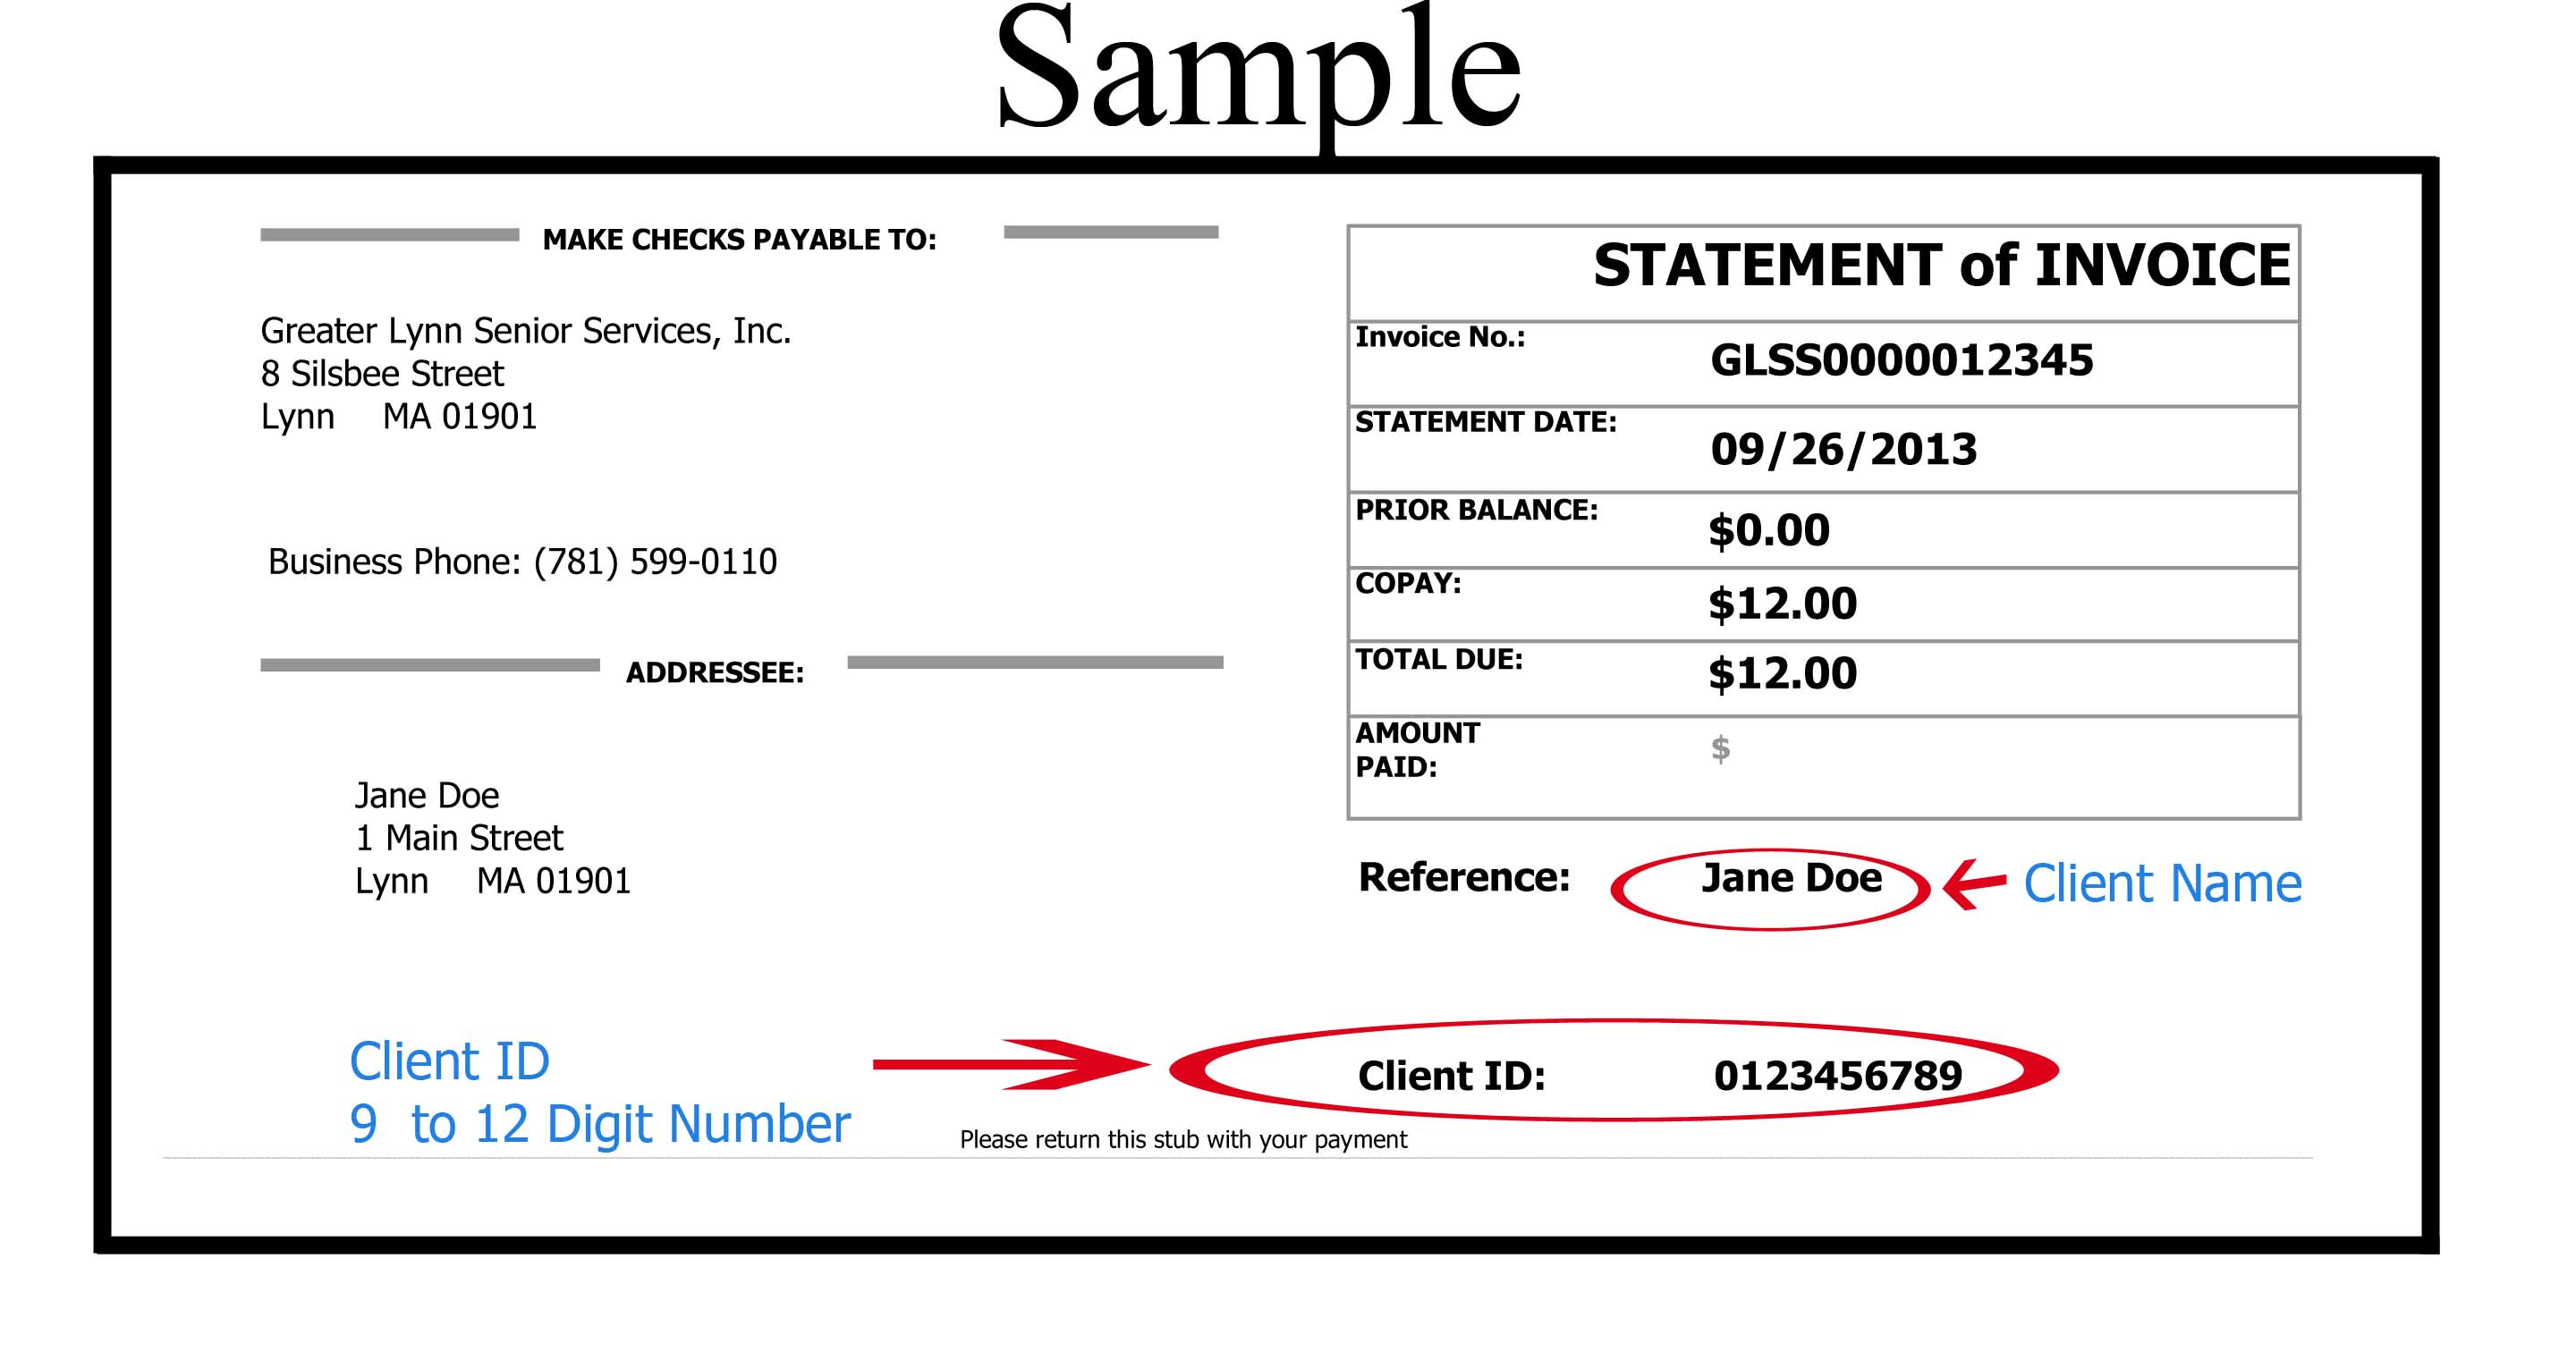 Picture of Sample Invoice